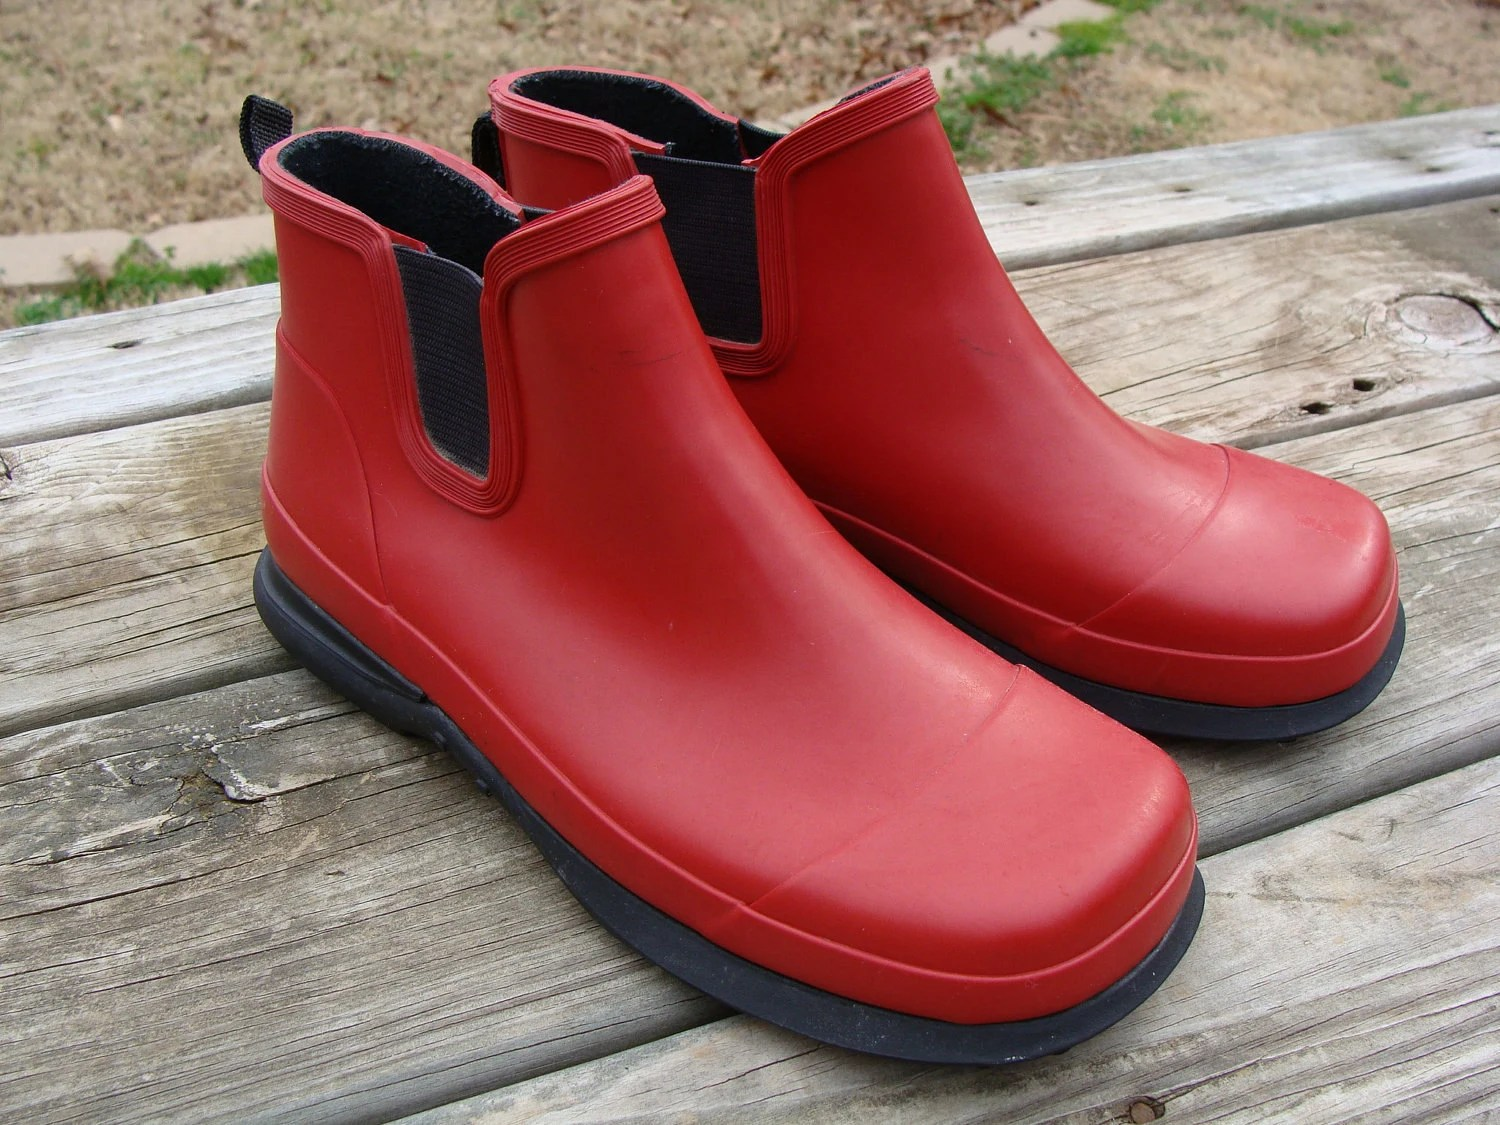 Sale Eddie Bauer Rain Boots Womens Ladies Size 7 Red Lacrosse